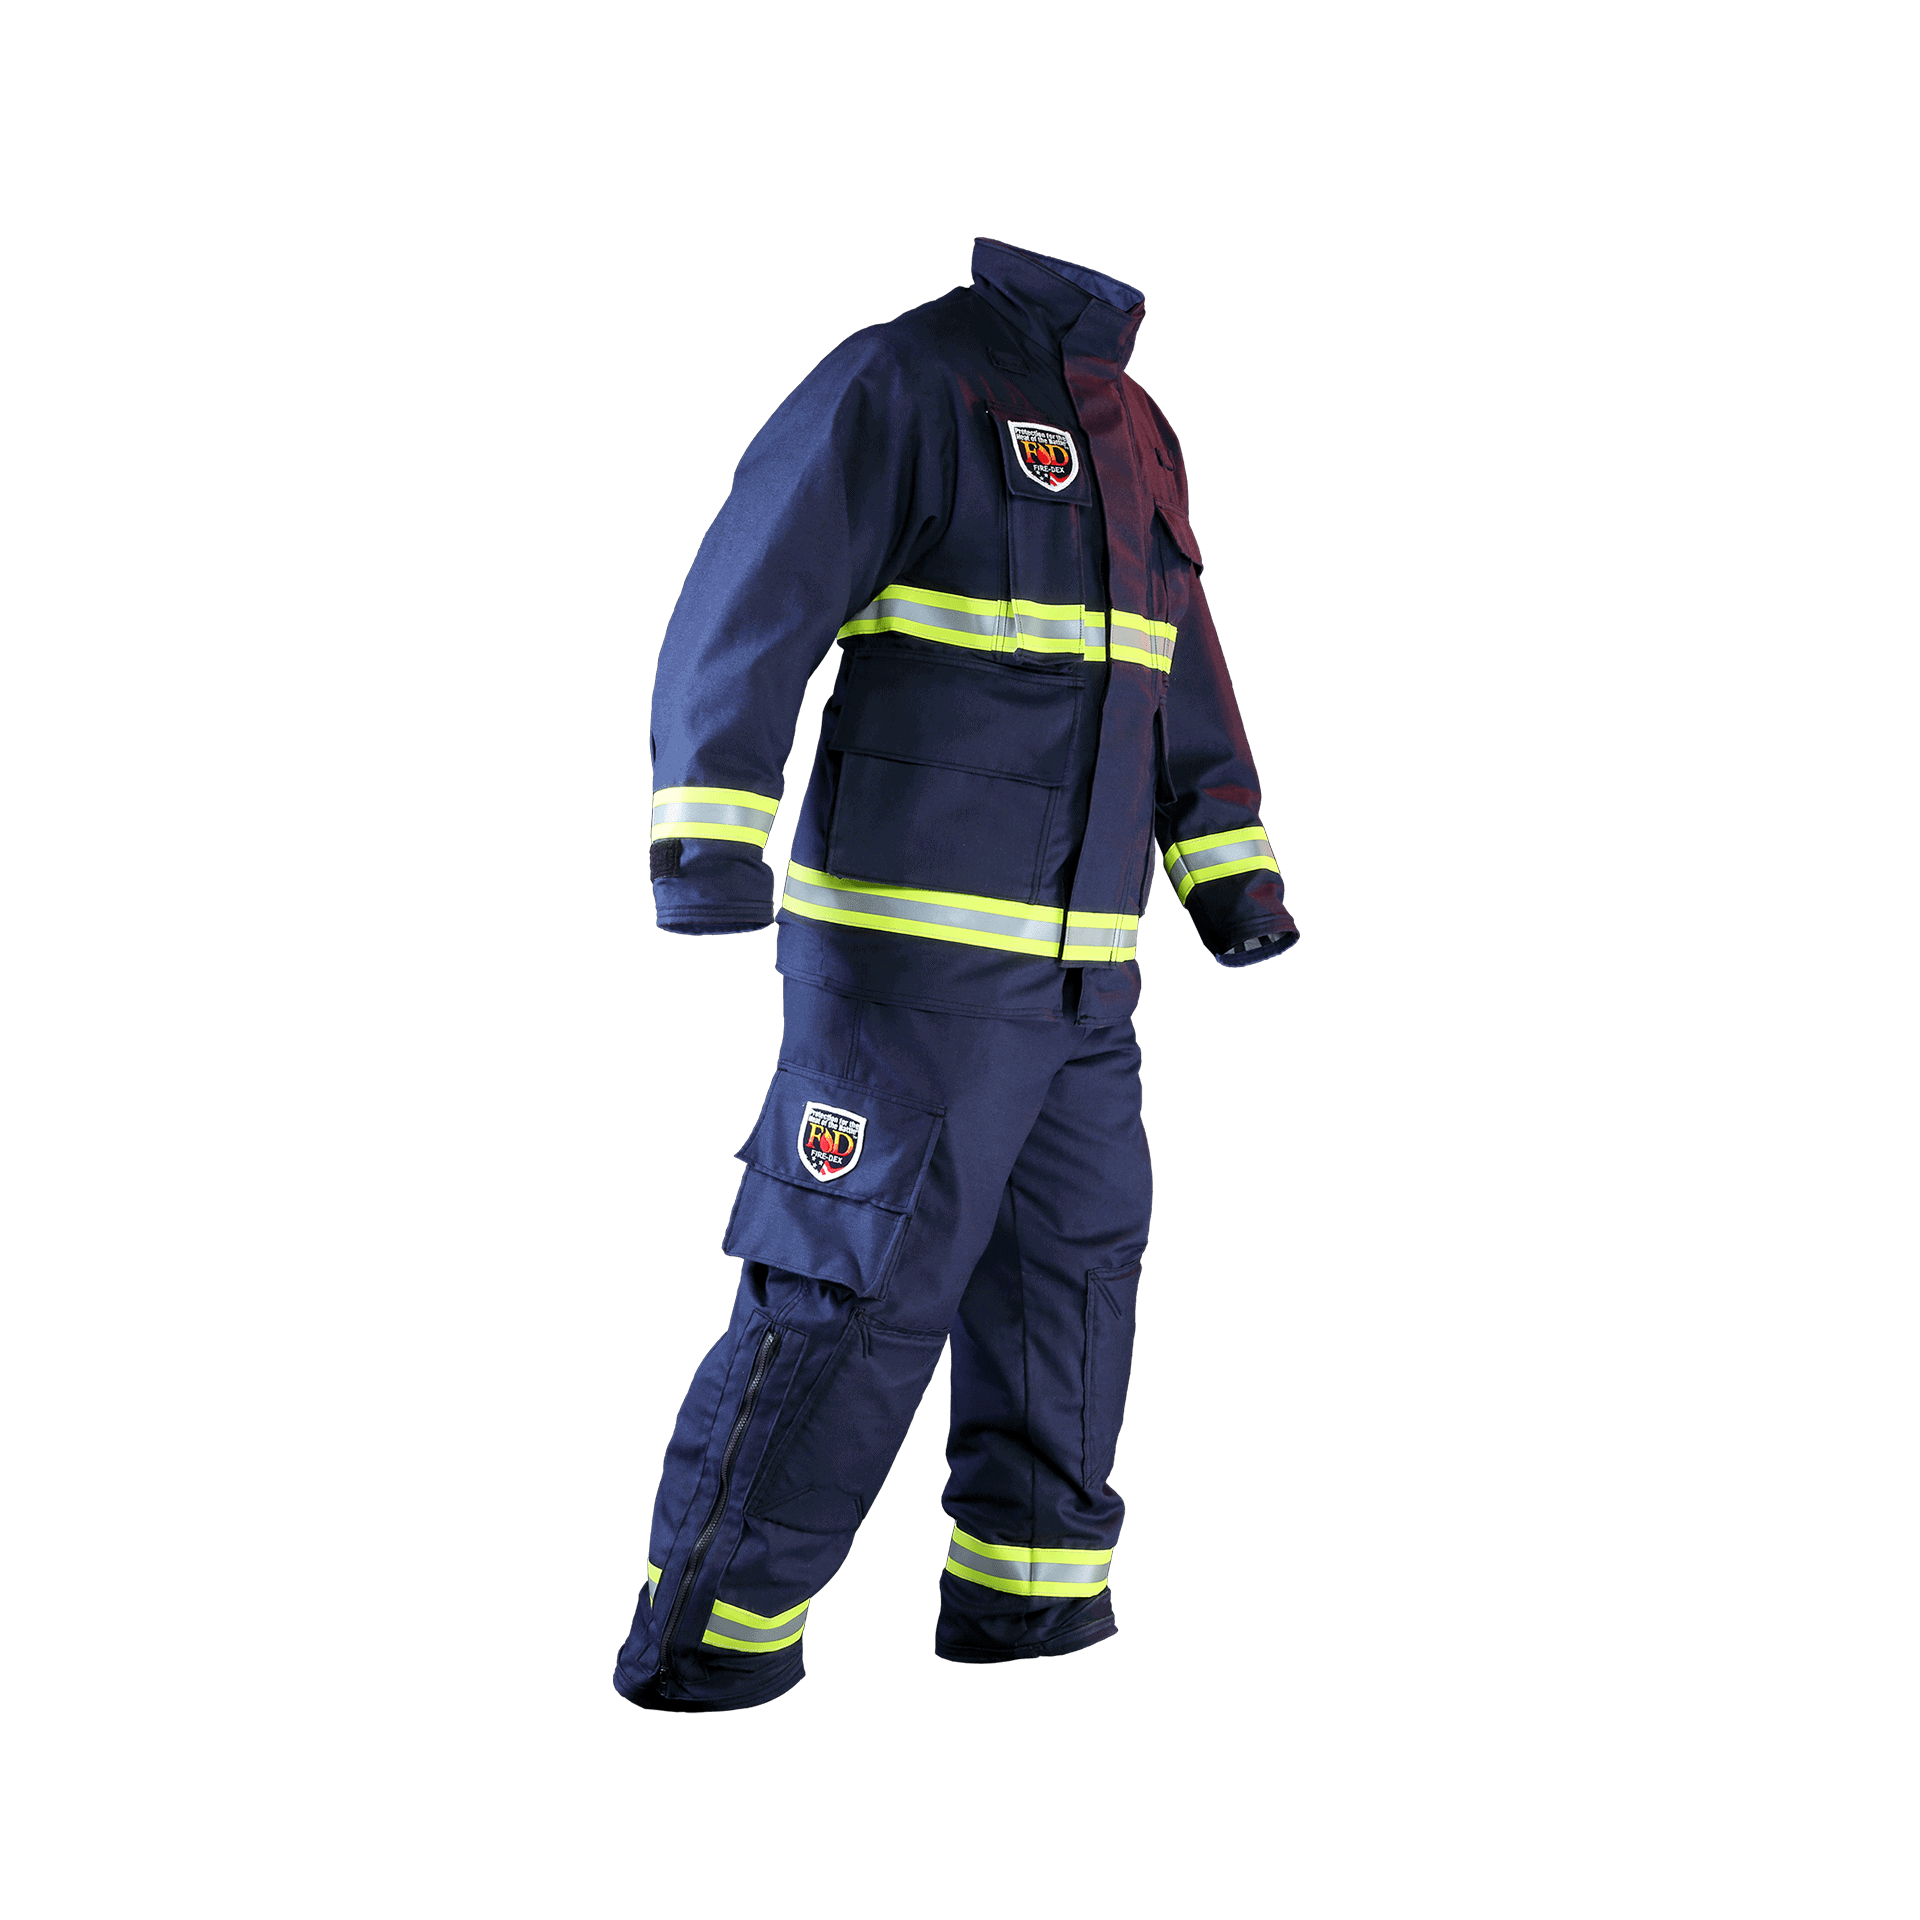 USAR navy Full side view